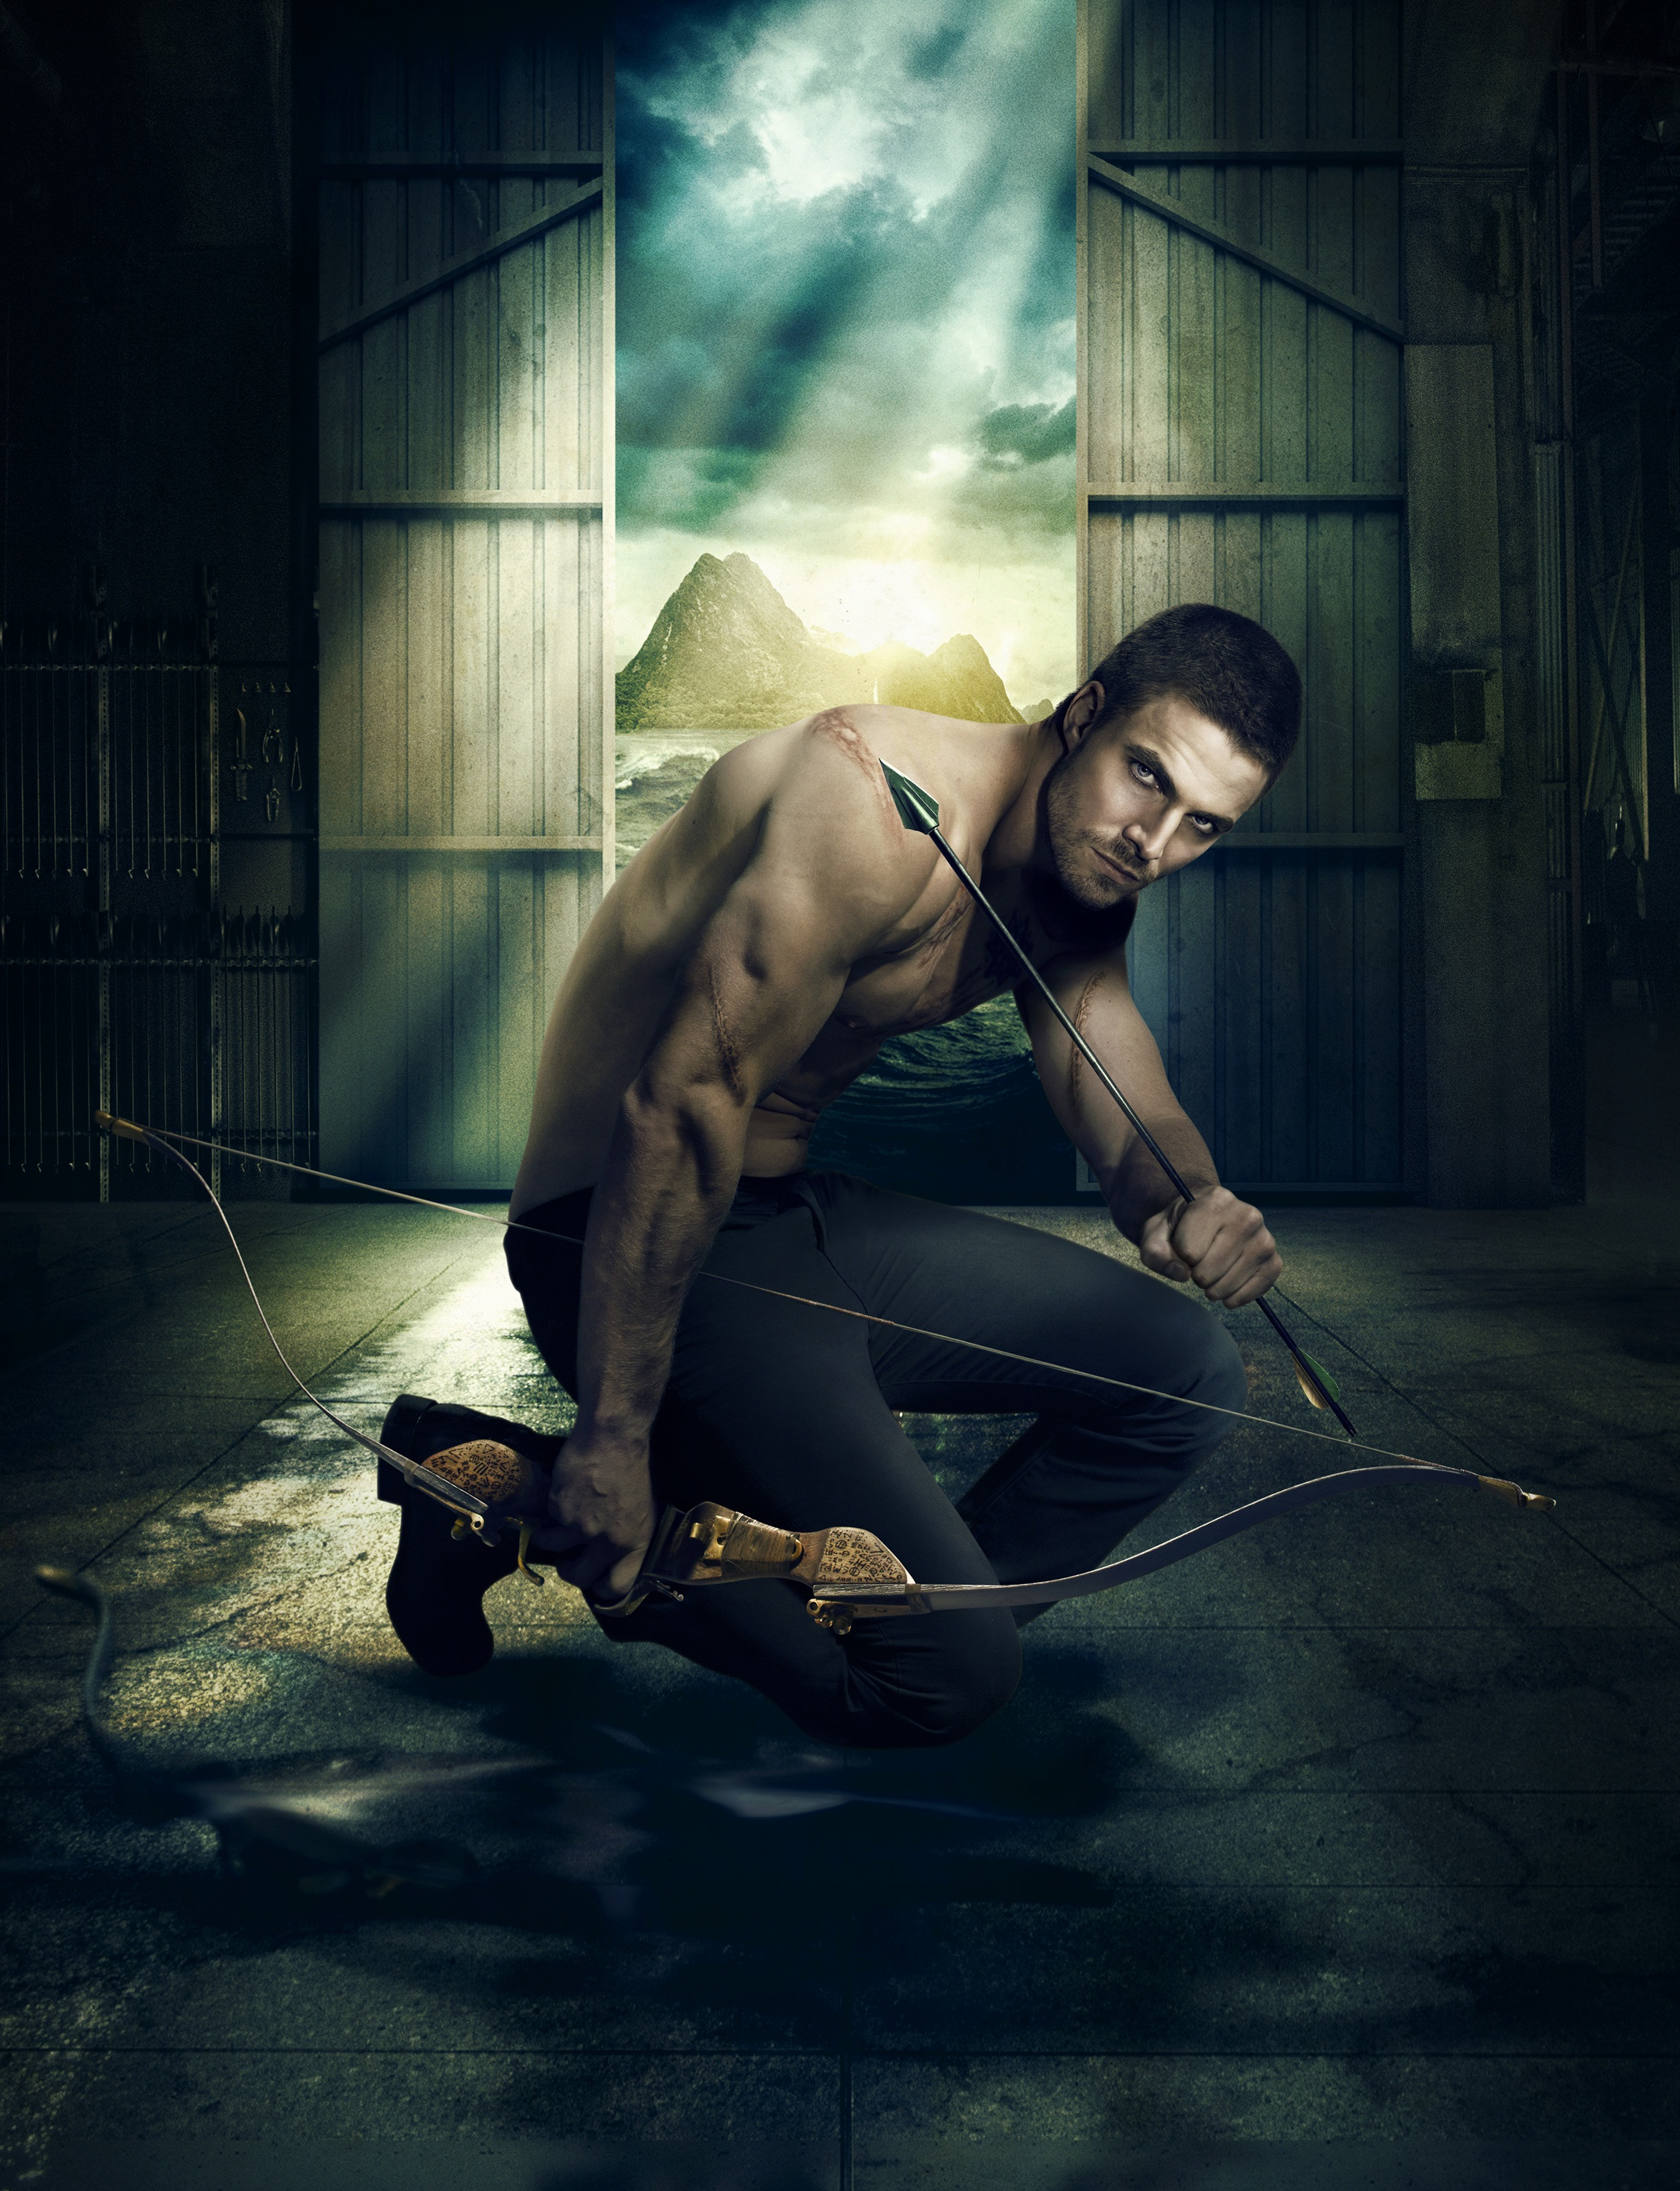 Arrow promo - A heroic future forged by a tortured past - textless.png